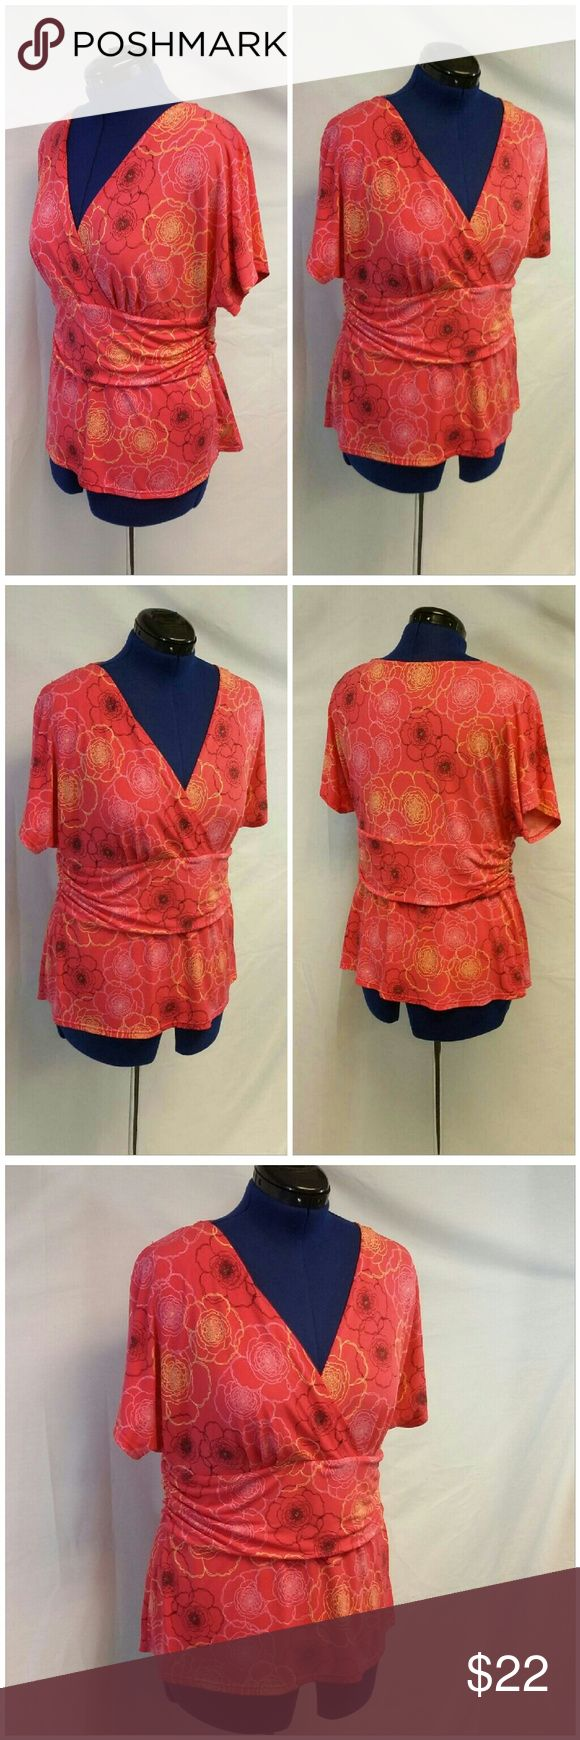 """Deep V-neck Wide Drape Waist Floral Top size 1X-2X Deep V-neck, Wide Drape Waist, Floral Top,  size 1X-2X See Measurements tag cut off, 4 decorative buttons on ruching at left side of waist, short bathing sleeves, very stretchy, machine washable,  polyester nylon spandex blend, approximate measurements :  27"""" length shoulder to hem, 20"""" bust laying flat,  5 1/2"""" sleeves, 19""""+ waist laying flat Tops"""